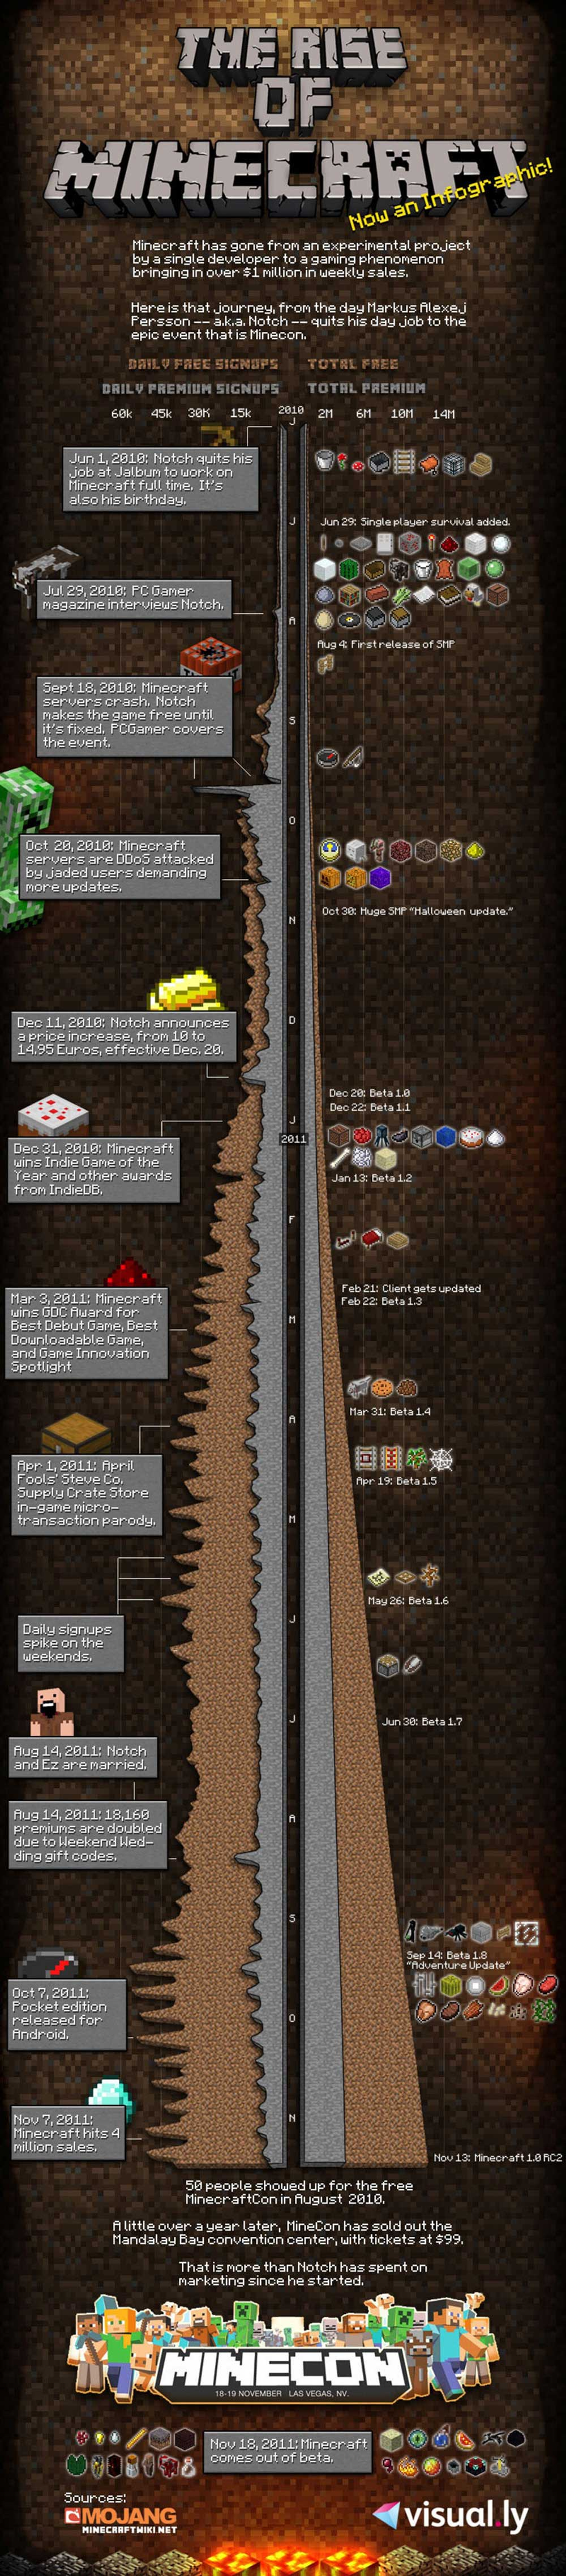 Infographic The history of minecraft